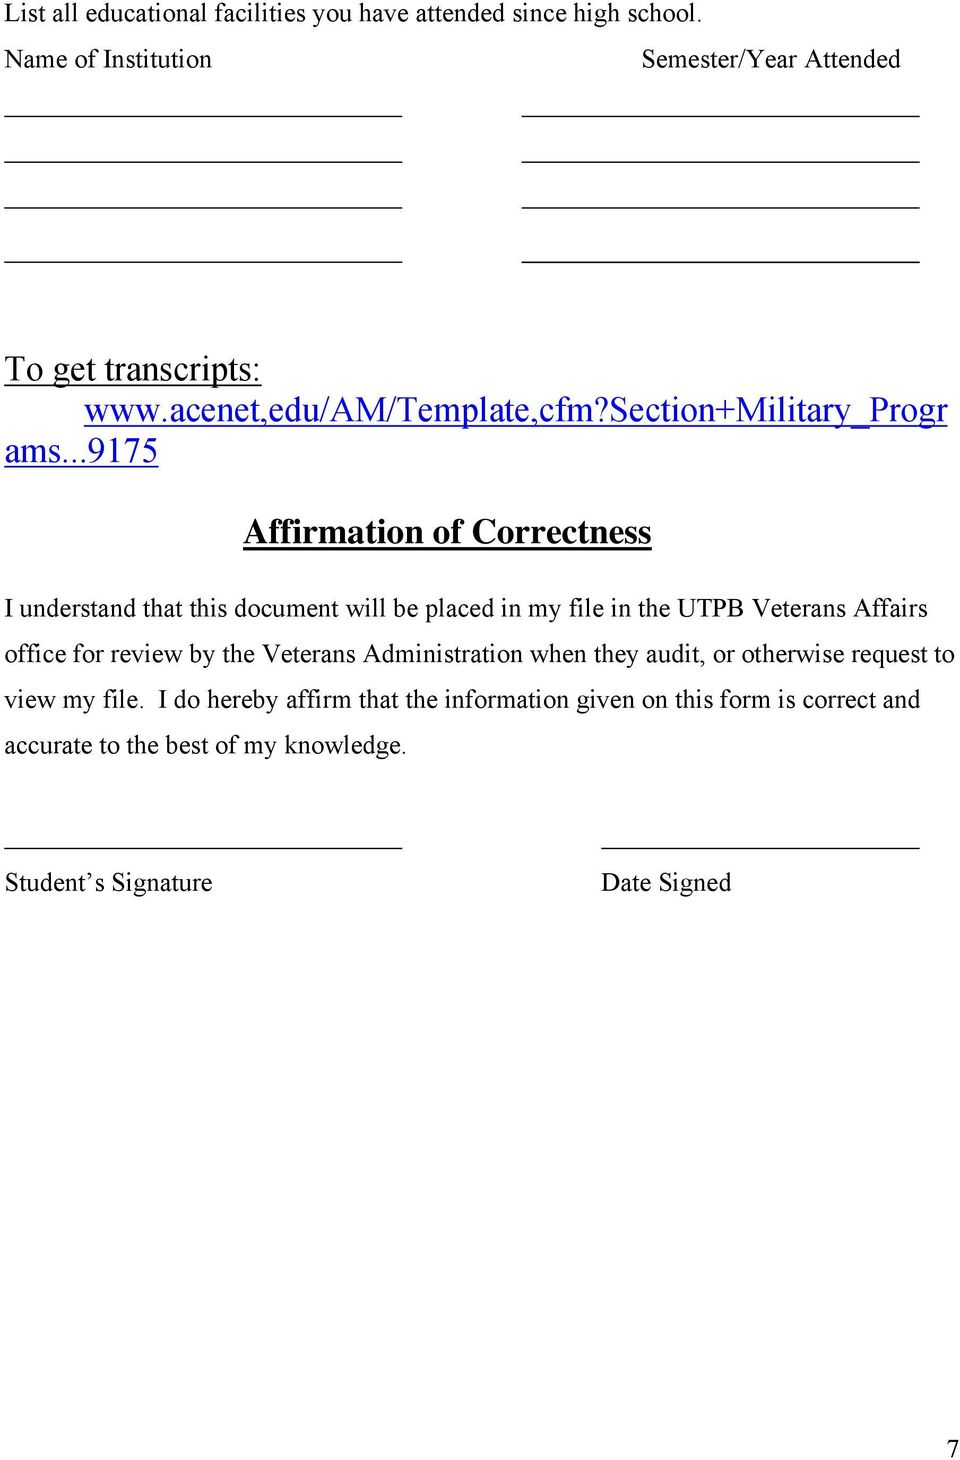 ..9175 Affirmation of Correctness I understand that this document will be placed in my file in the UTPB Veterans Affairs office for review